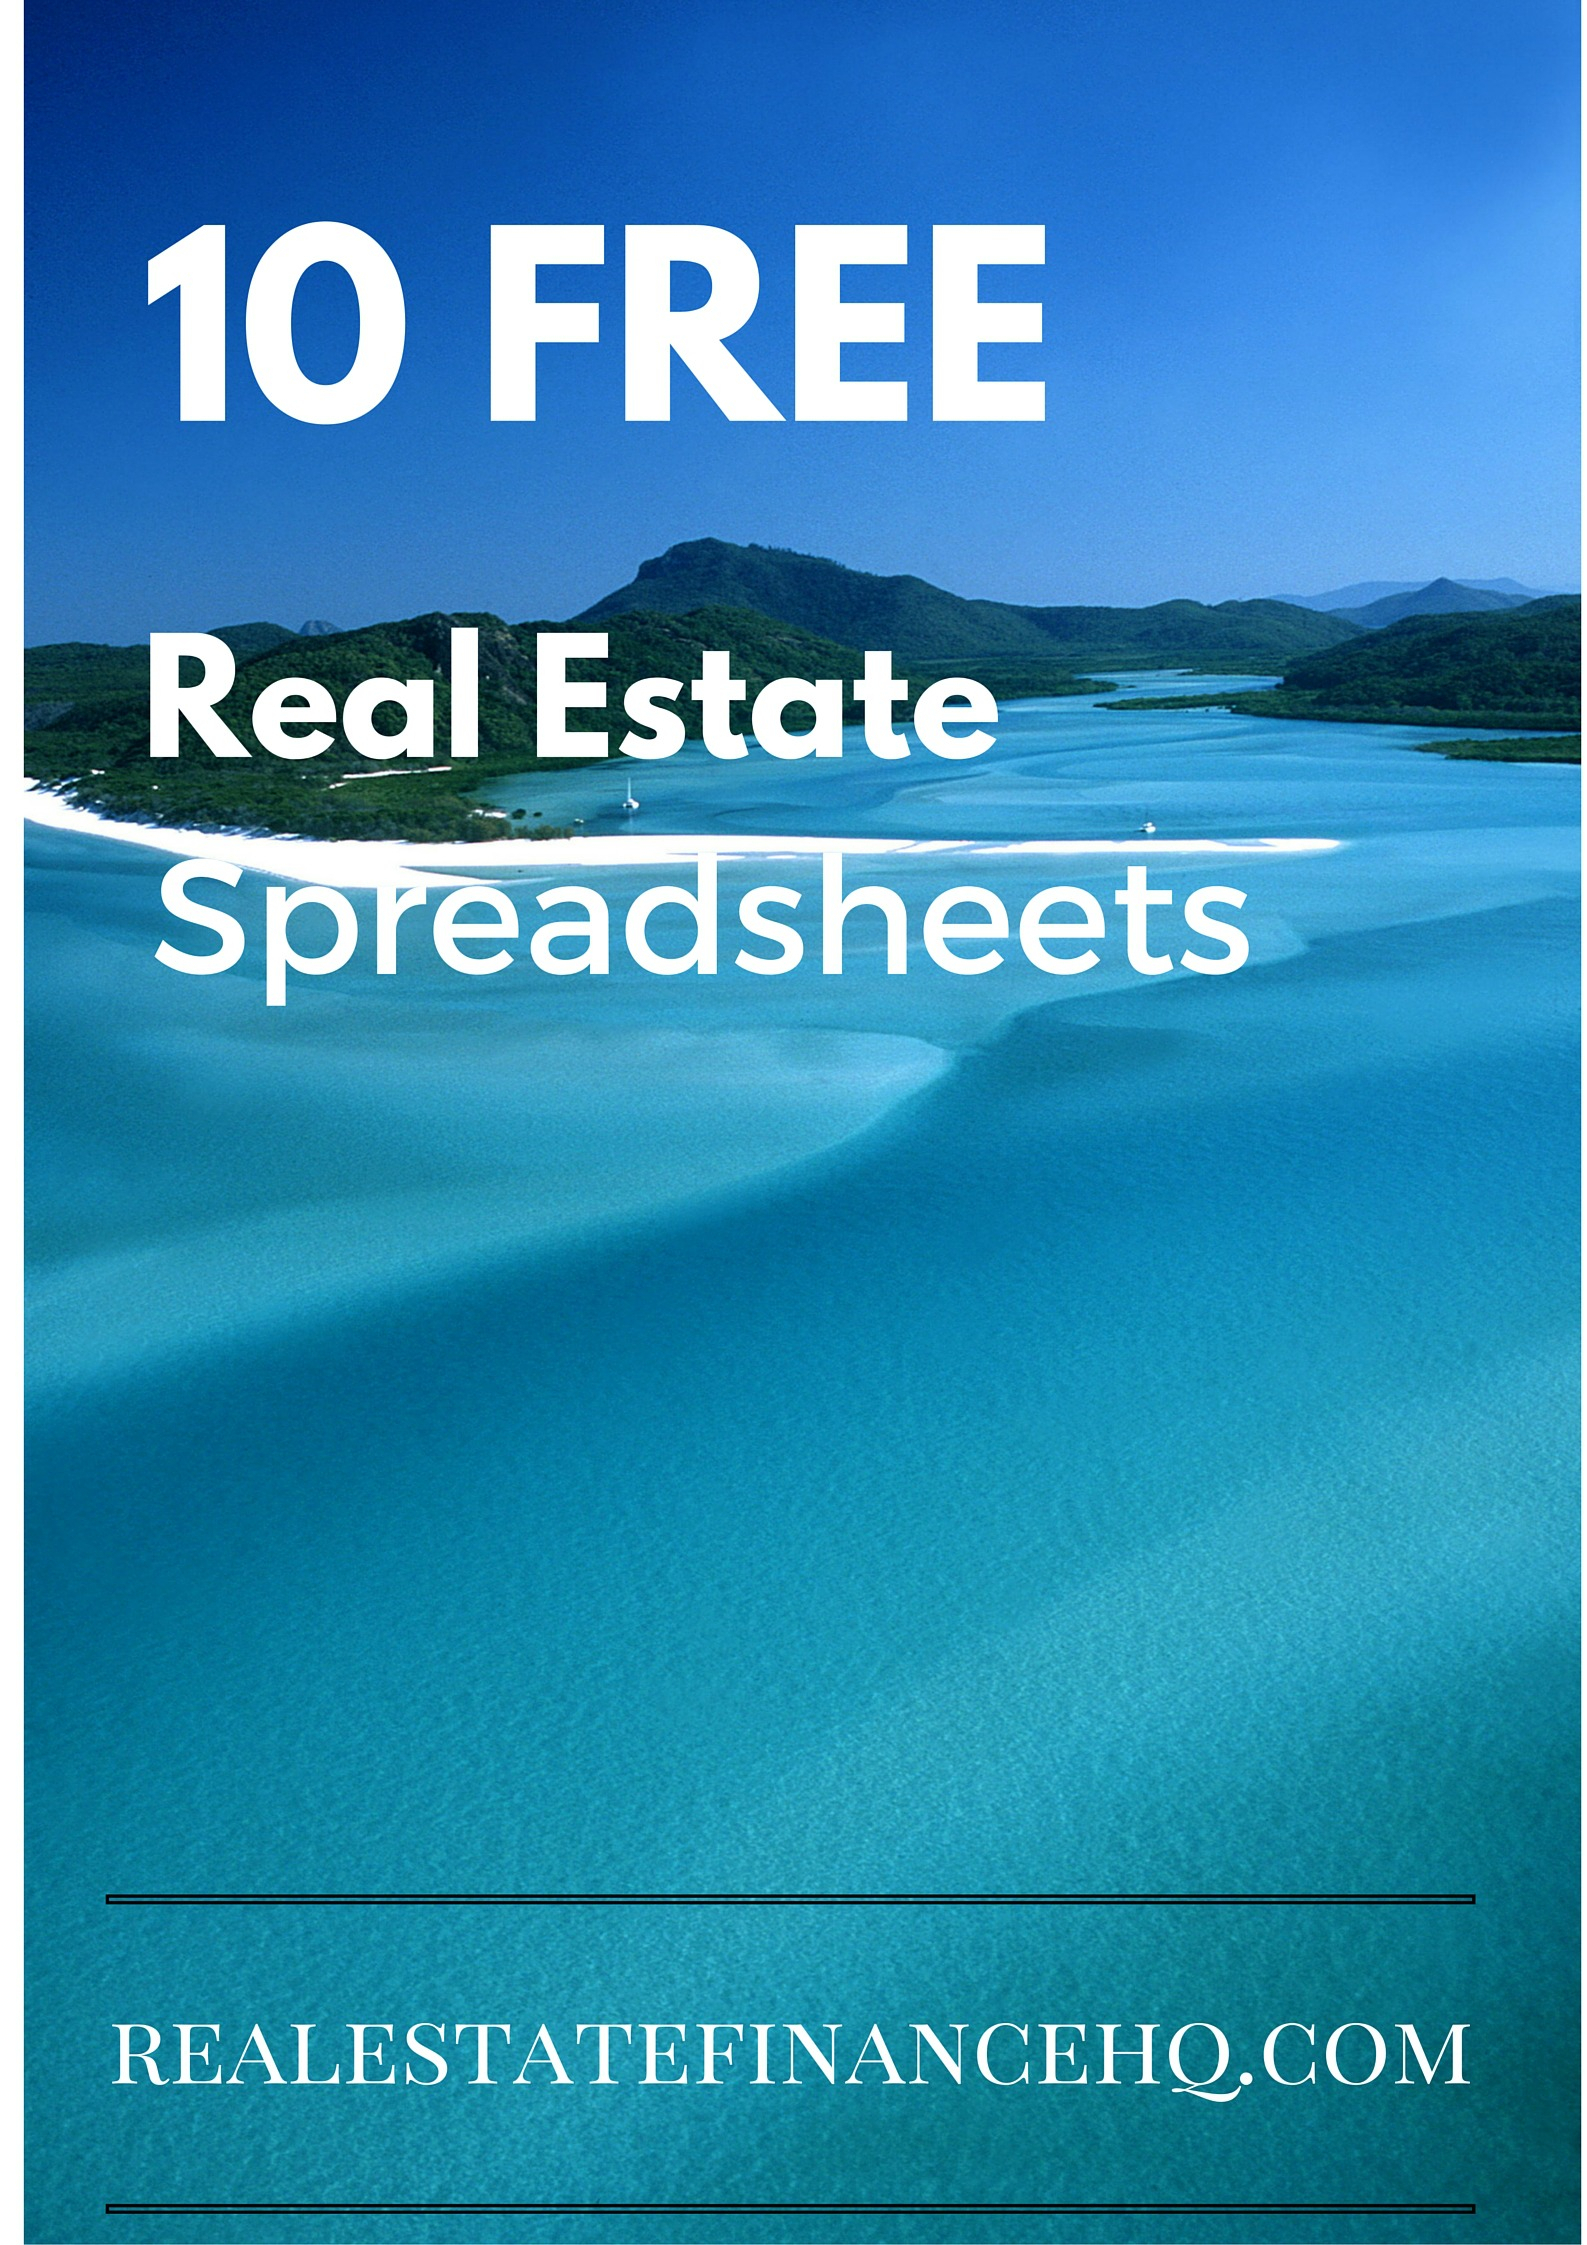 10 Free Real Estate Spreadsheets   Real Estate Finance Inside Downloadable Spreadsheets